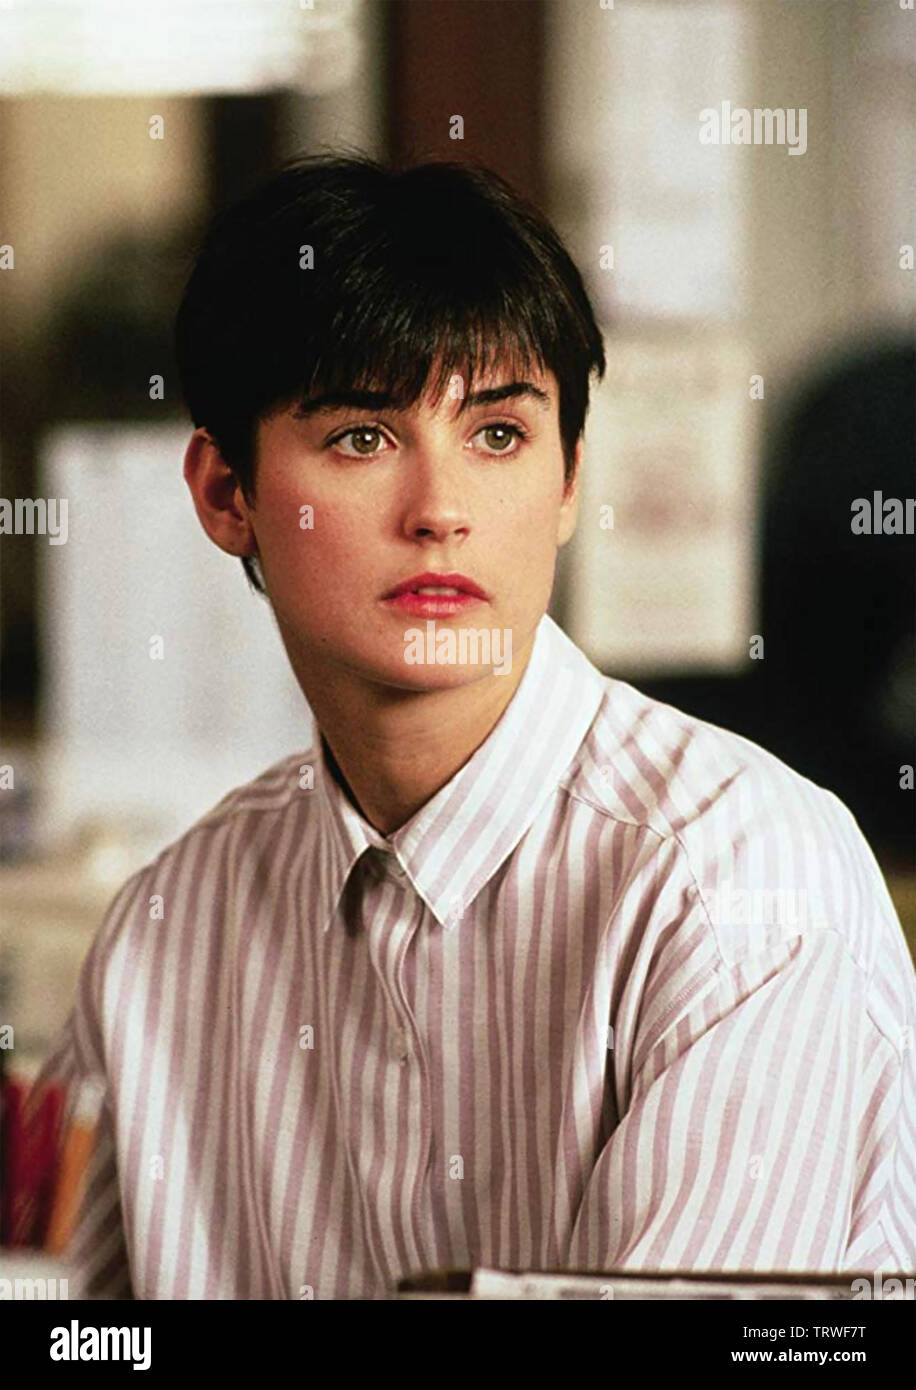 GHOST 1990 Paramount Pictures film with Demi Moore - Stock Image